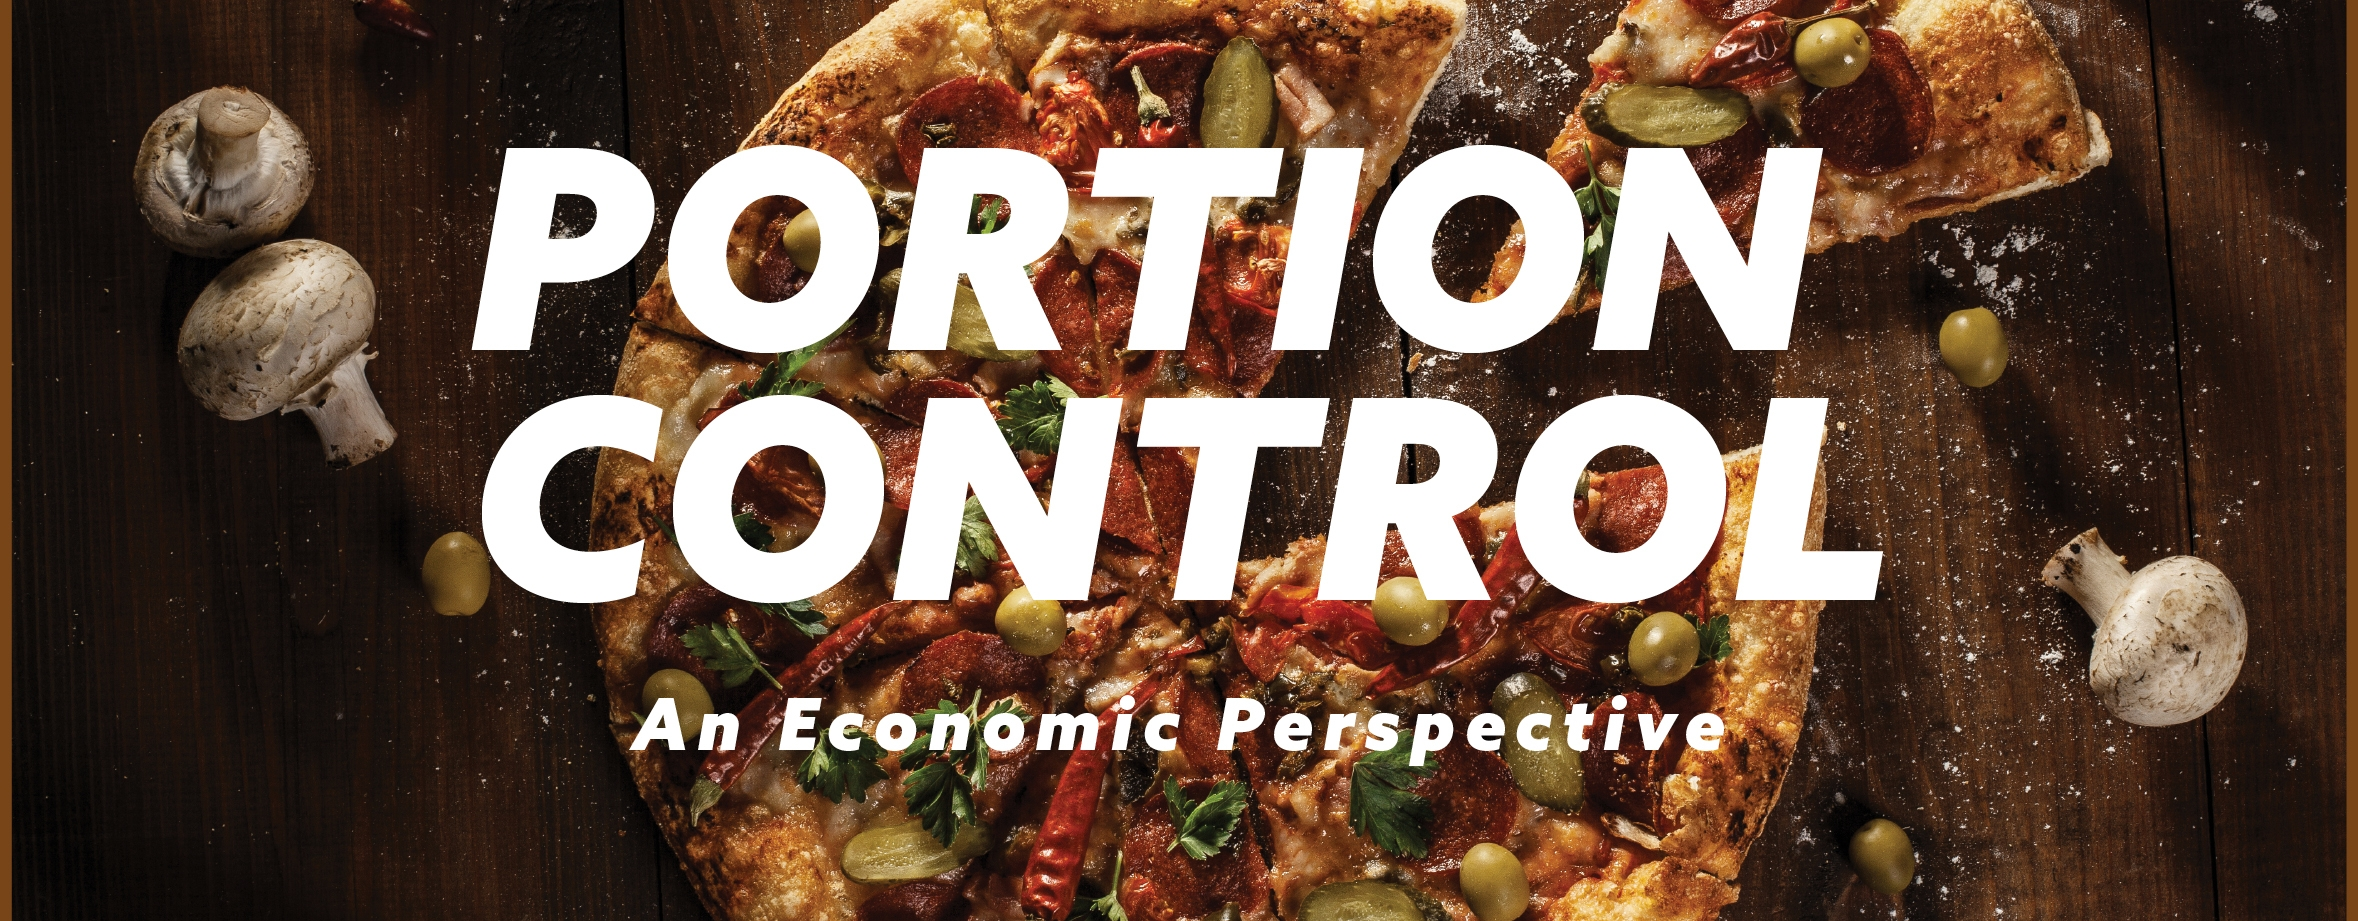 Portion control is more than a dieting tactic - it's a key to significantly reducing food waste.